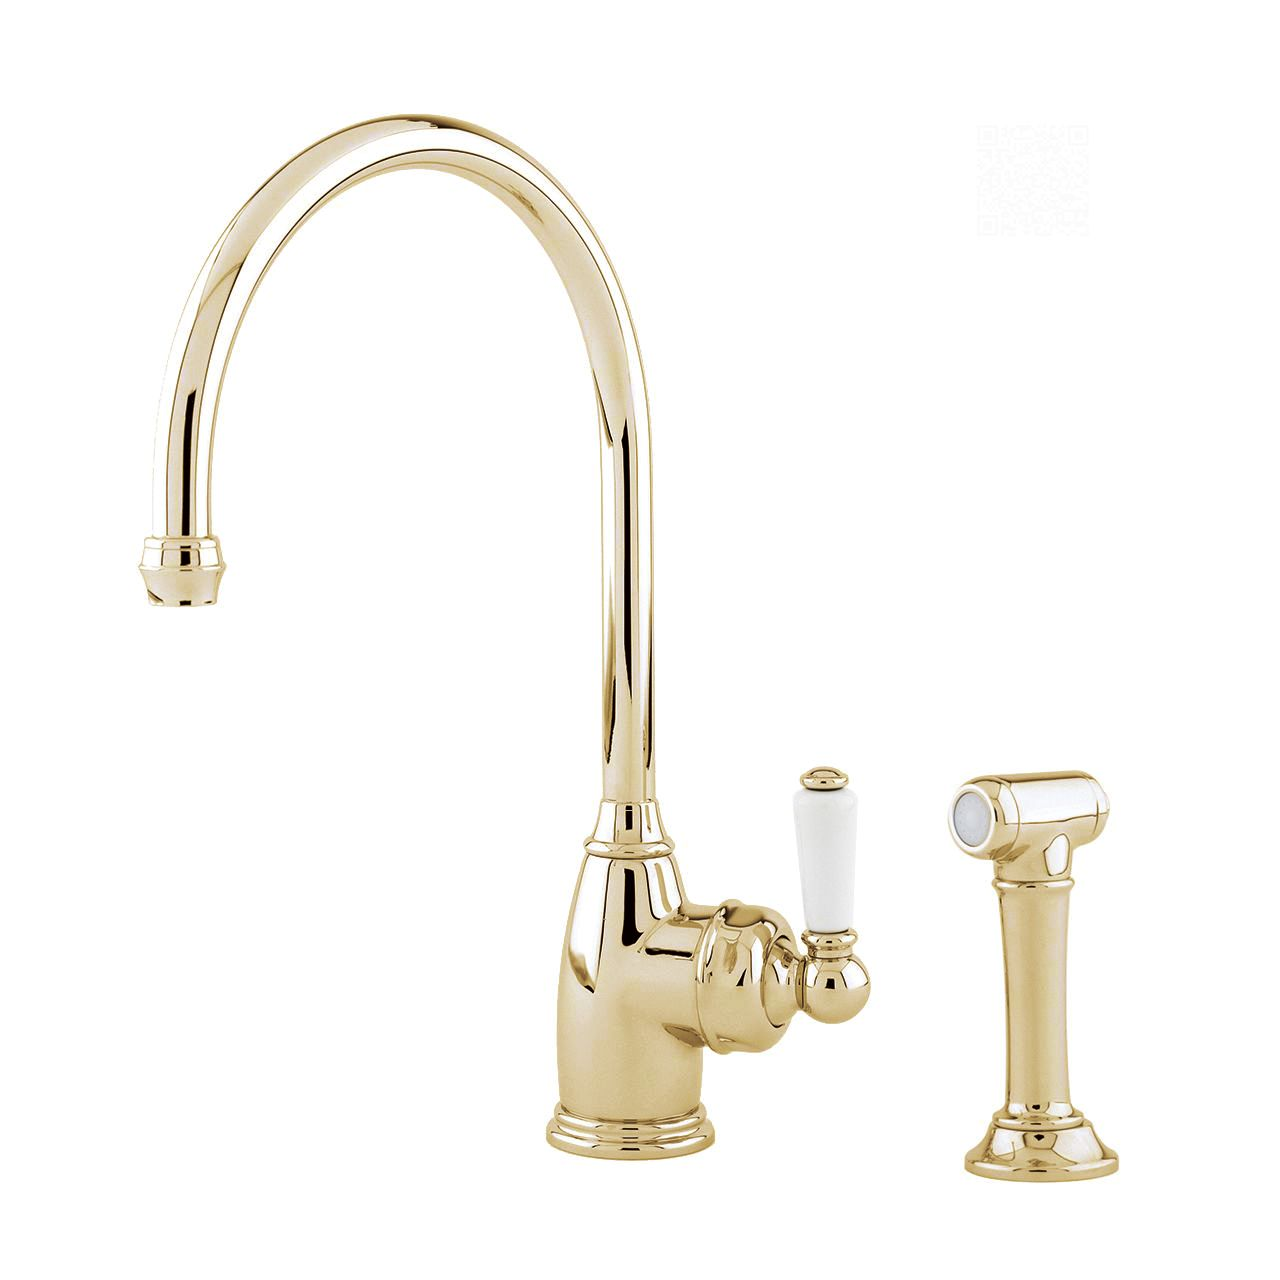 Perrin Amp Rowe Parthian 4346 Kitchen Tap Sinks Taps Com